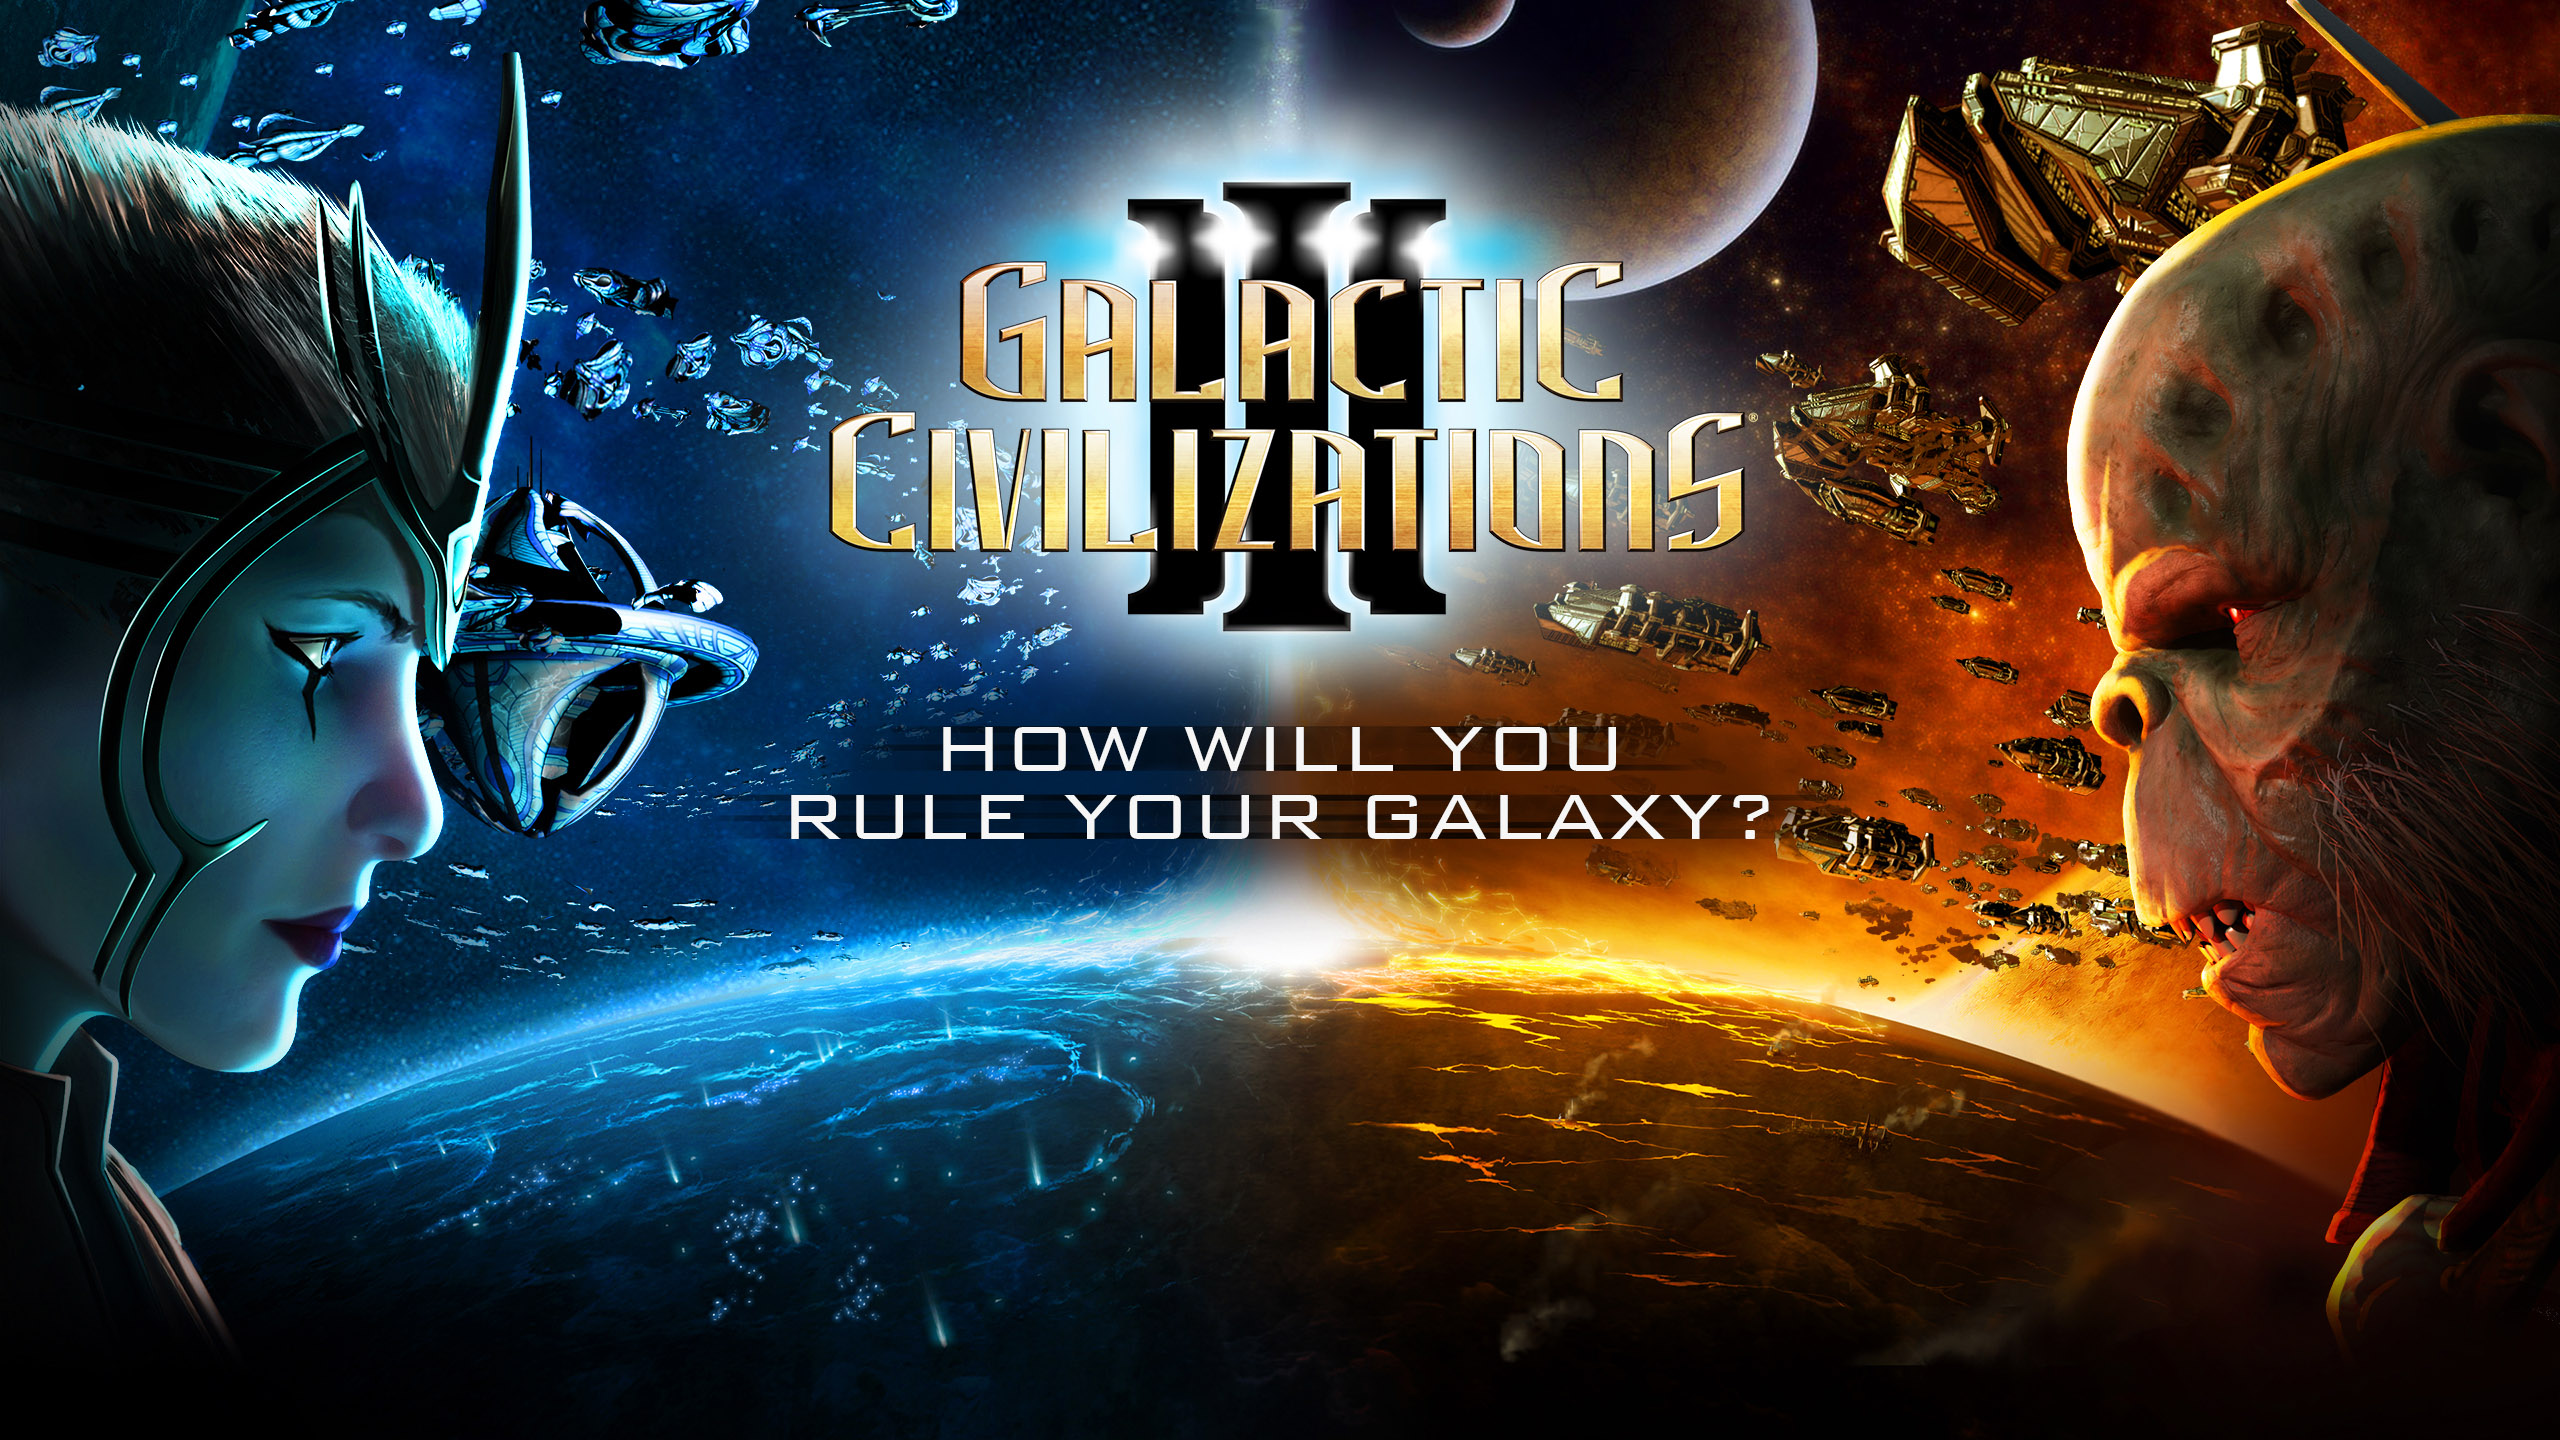 Galactic Civilizations III   Download and Buy Today - Epic Games Store